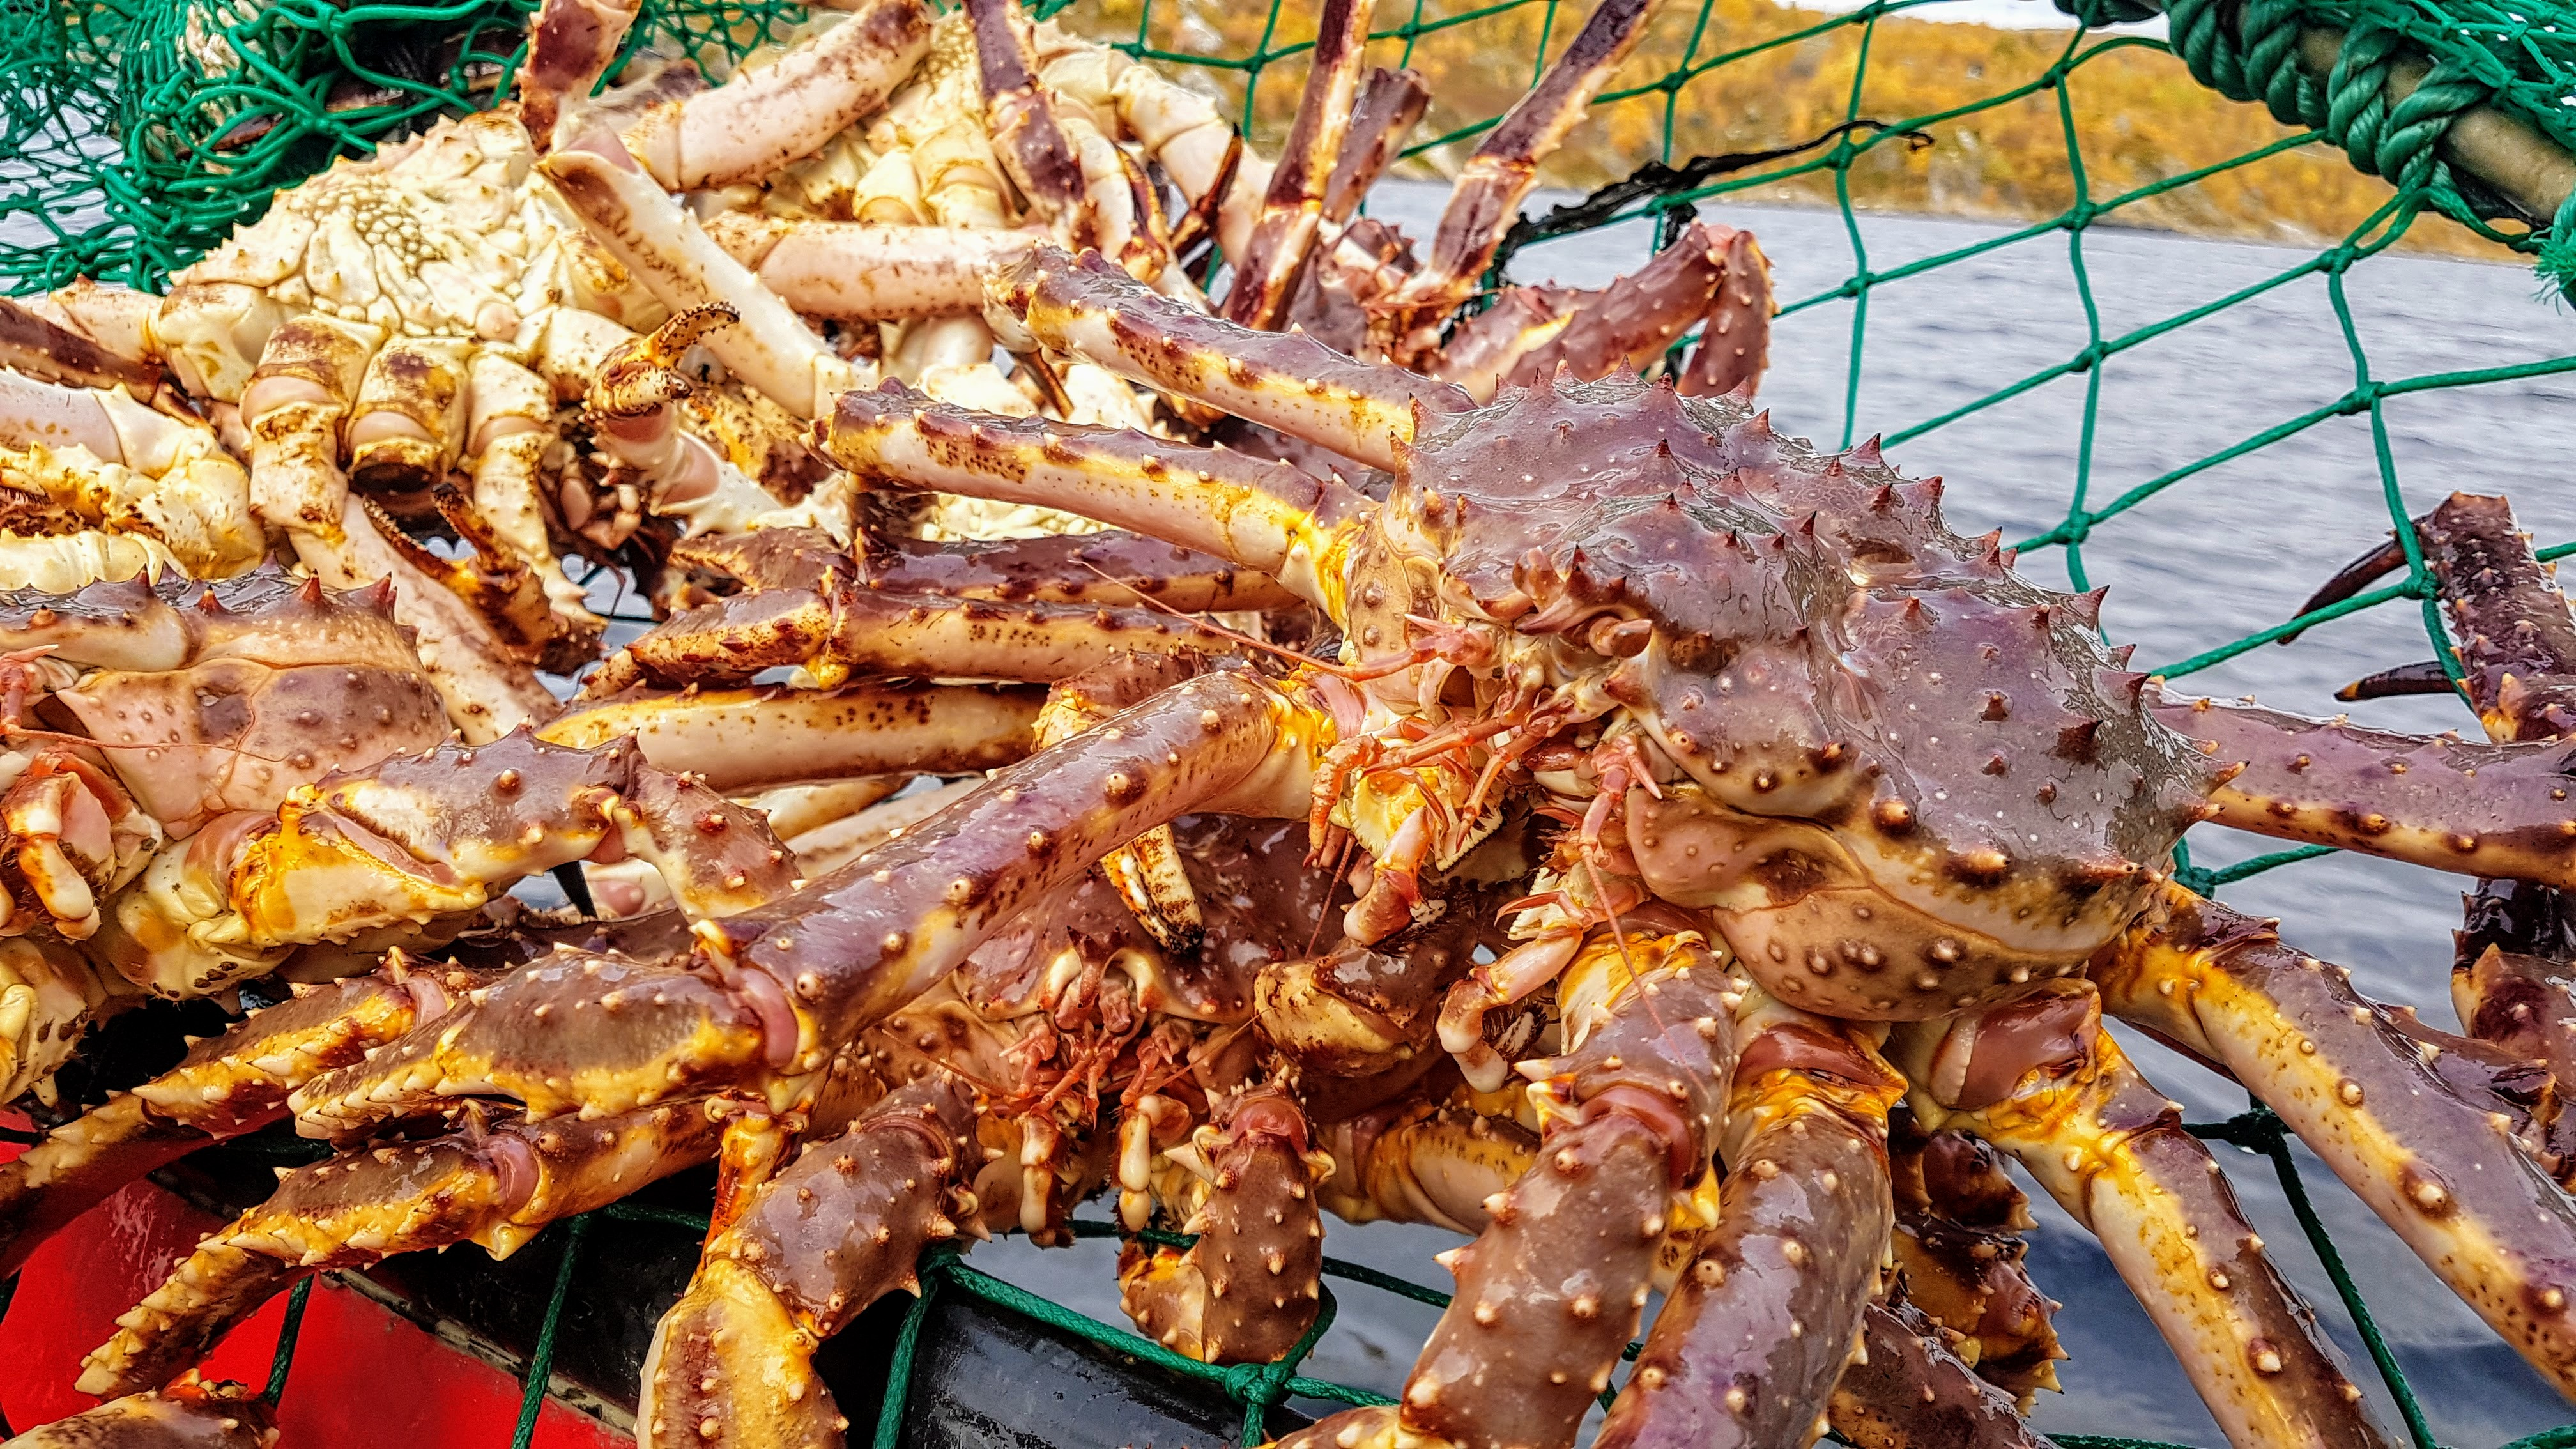 King crabs